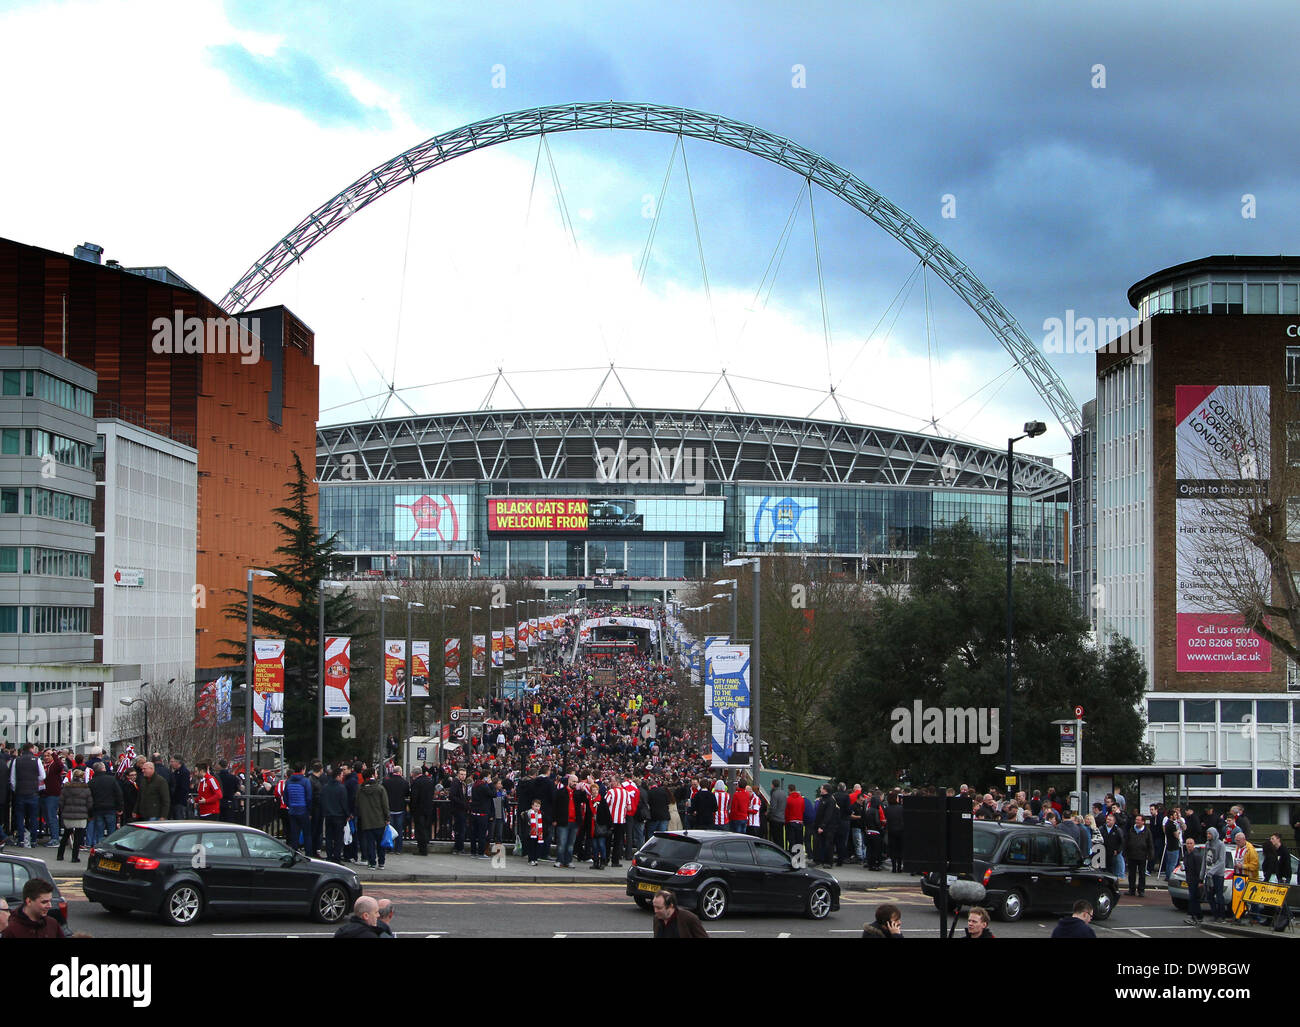 Wembley, London, UK. 2nd March, 2014. Capital One Cup Final - Manchester City v Sunderland.  Fans make their way Stock Photo